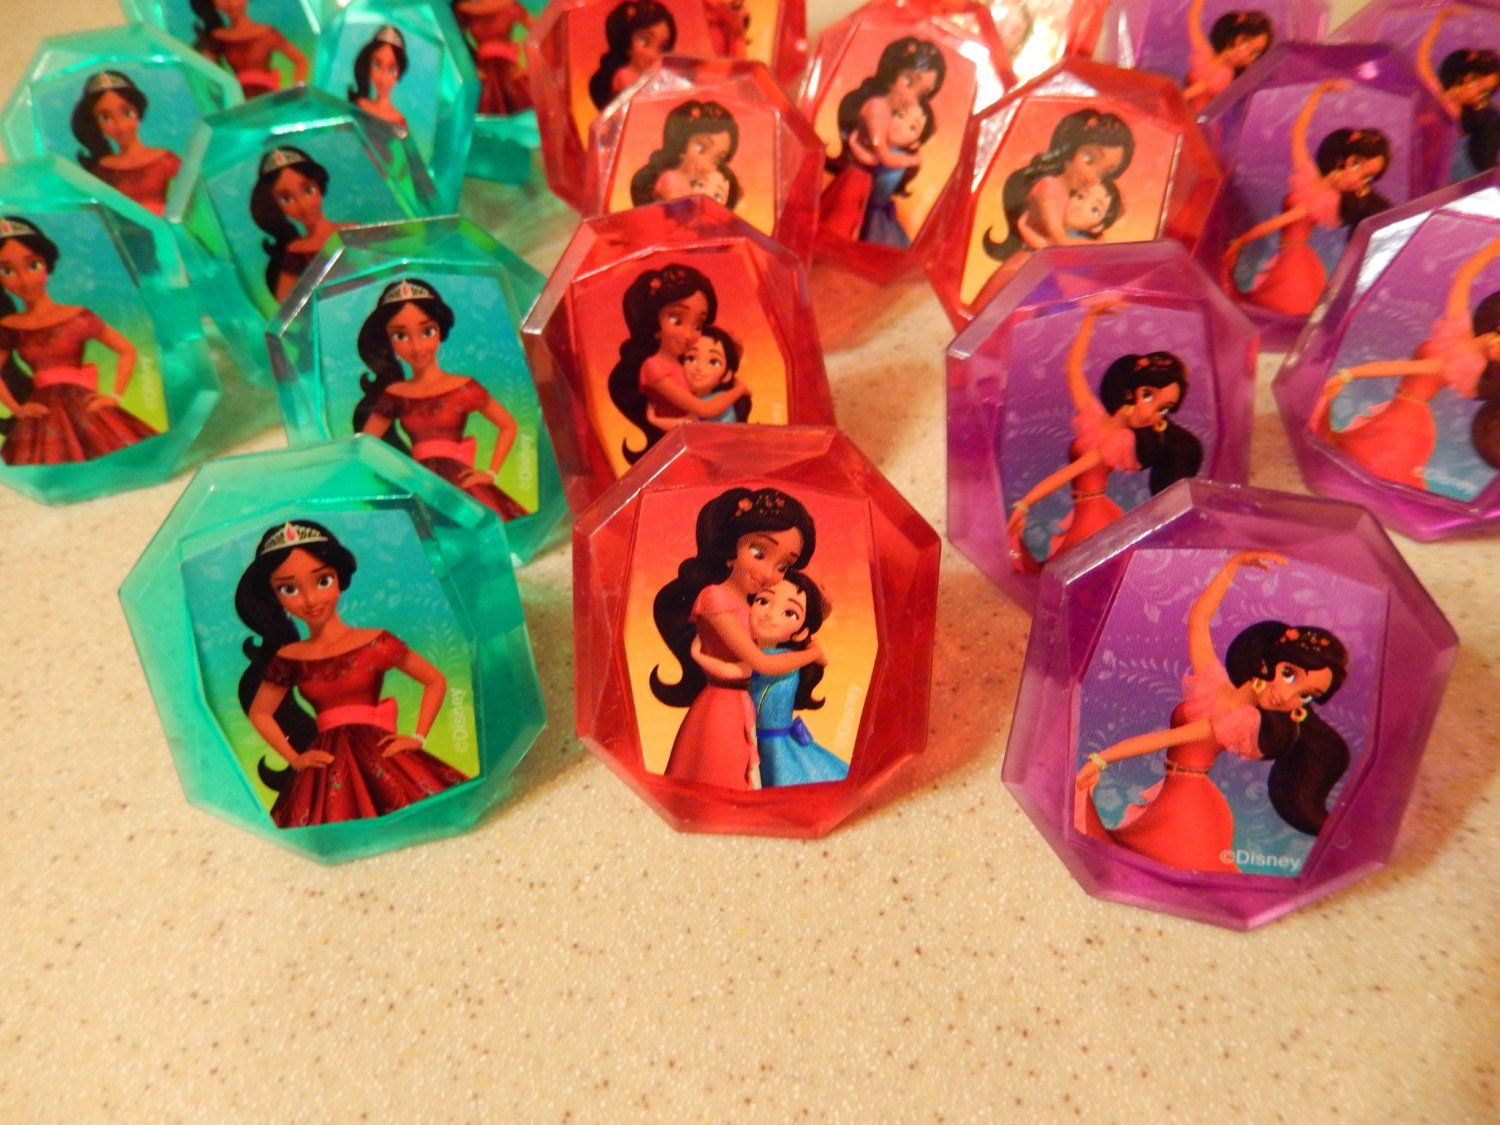 Decoration Stuff For Party 24 Elena Of Avalor Cupcake Cake Topper Rings Birthday Party